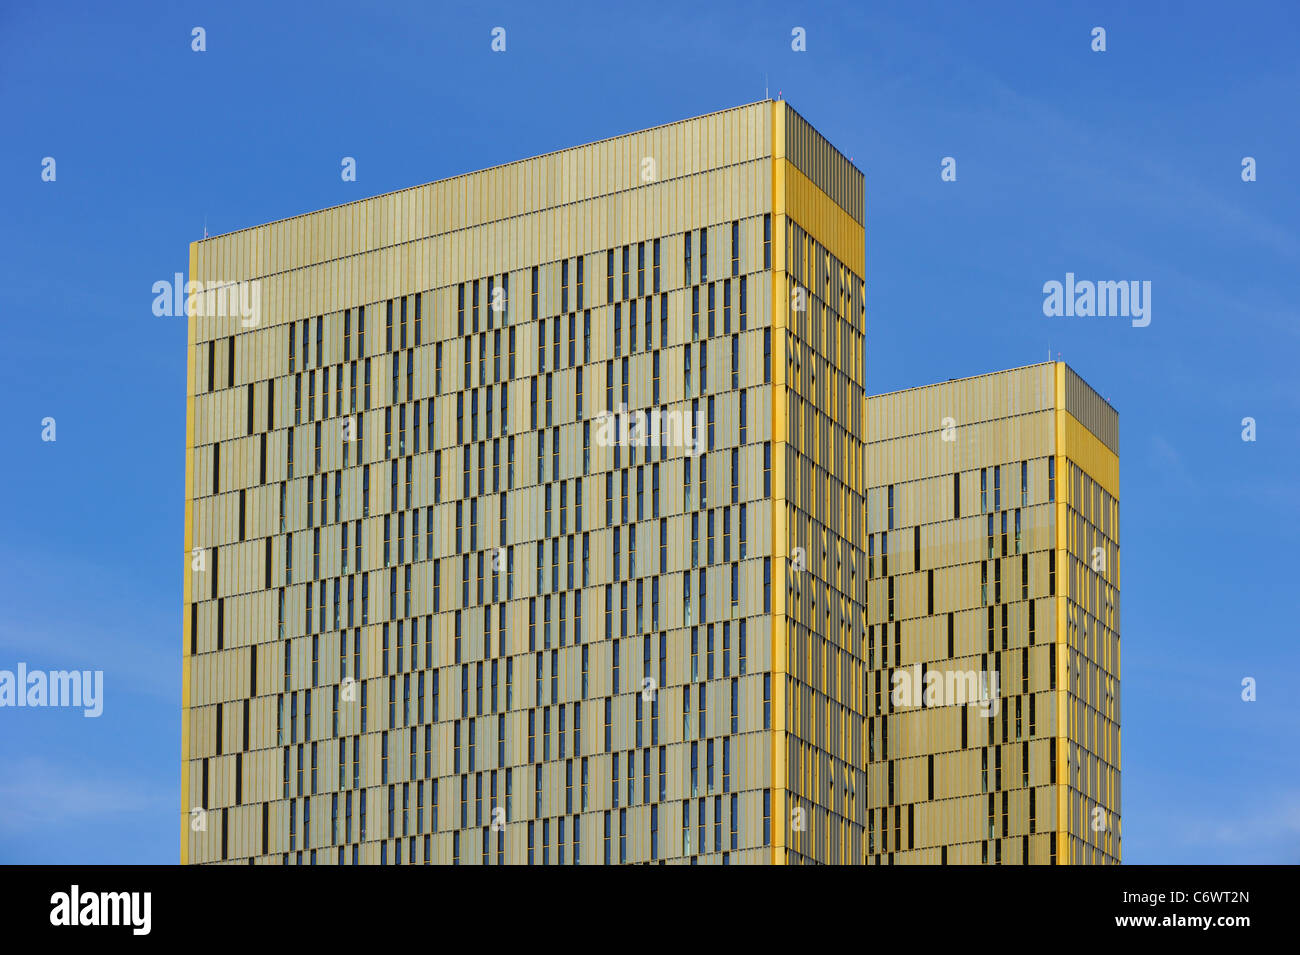 Office buildings of the Court of Justice of the European Union at the Kirchberg plateau, Luxembourg - Stock Image